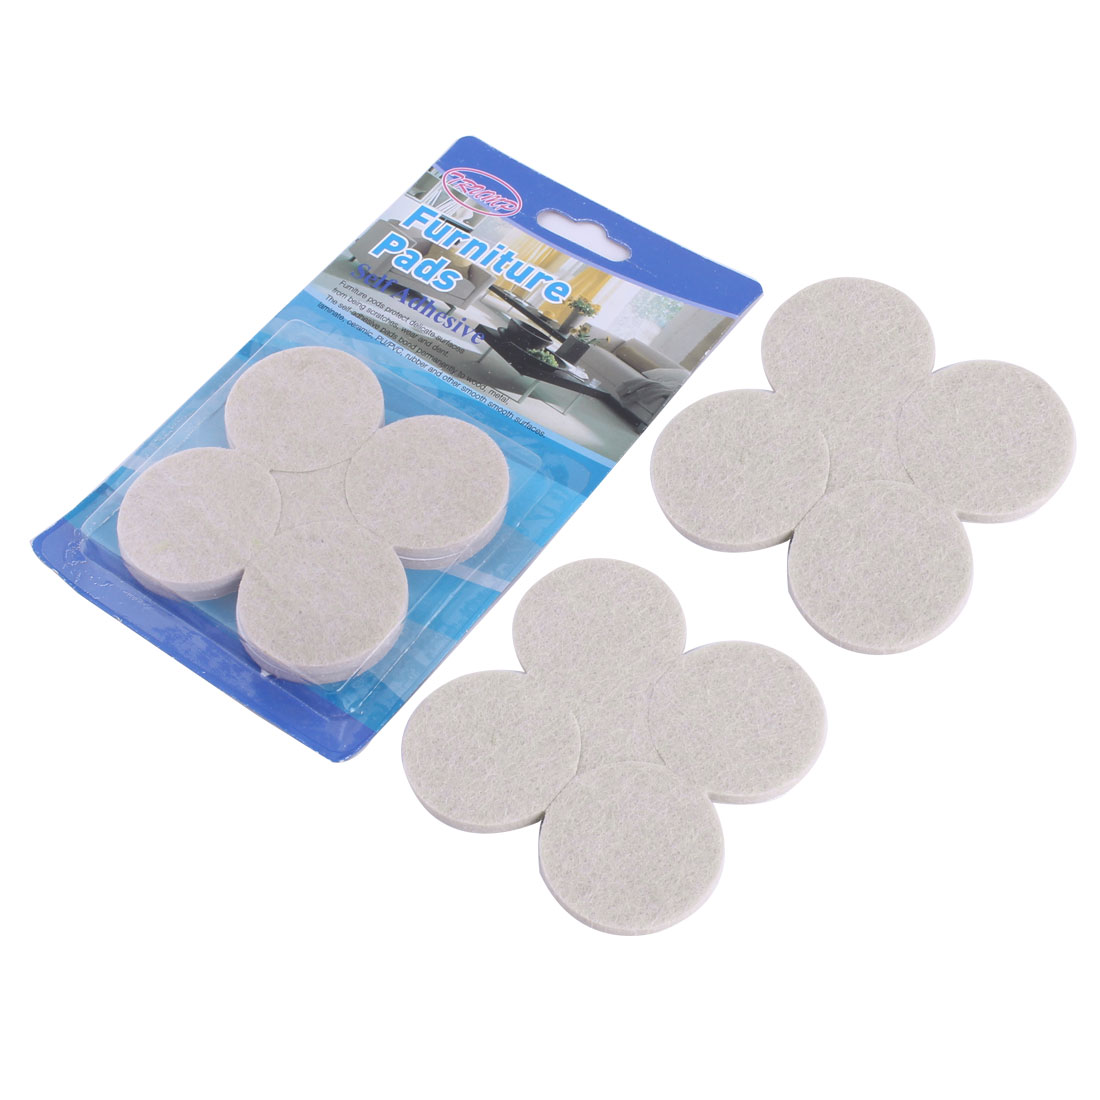 Home Round Table Chair Furniture Protector Felt Pads Cushion Mat 42mm Dia 16pcs